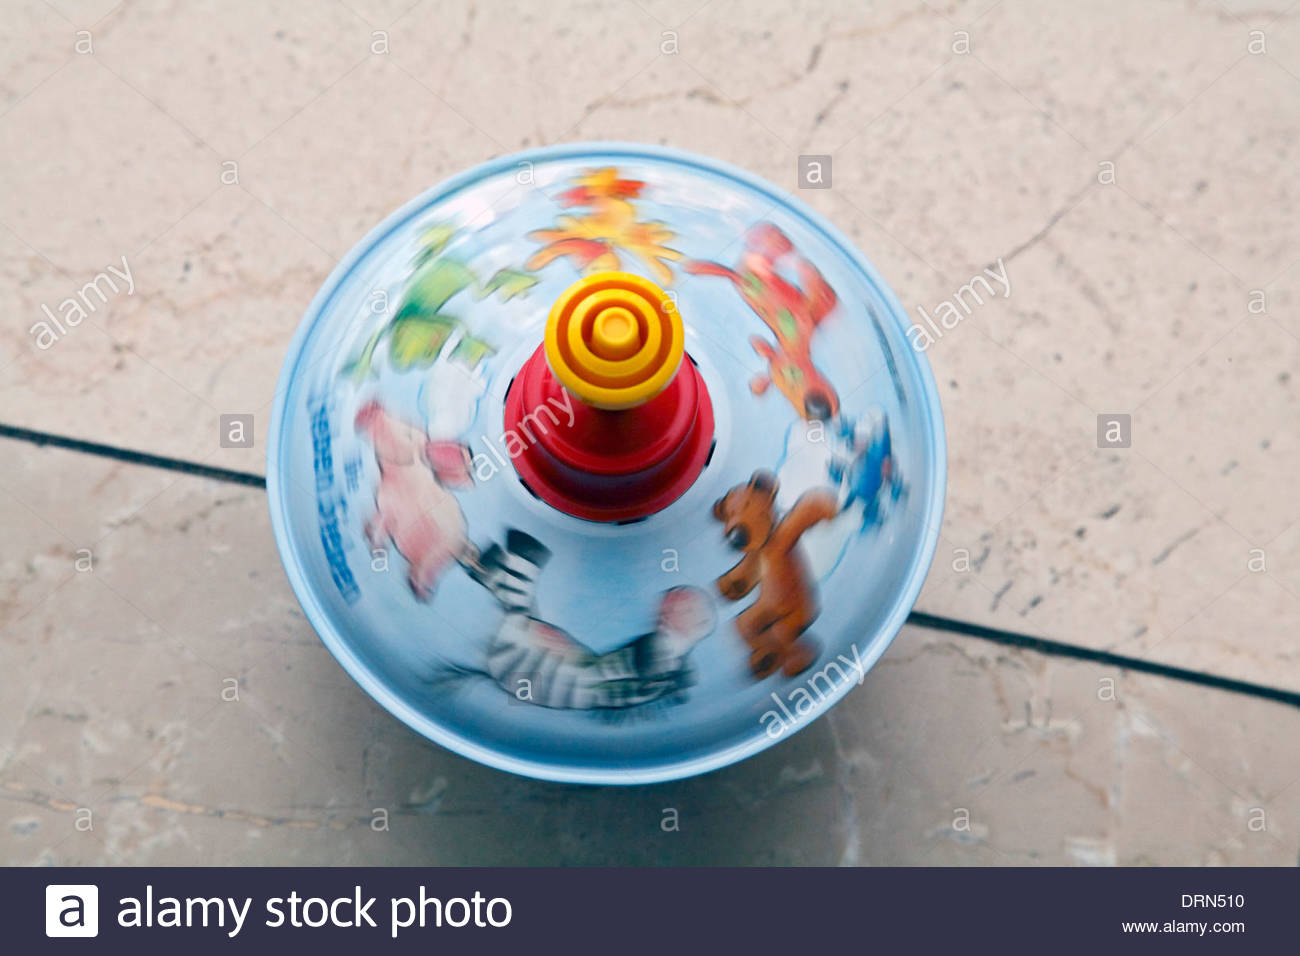 Toy, rotation humming top. Photo Stock